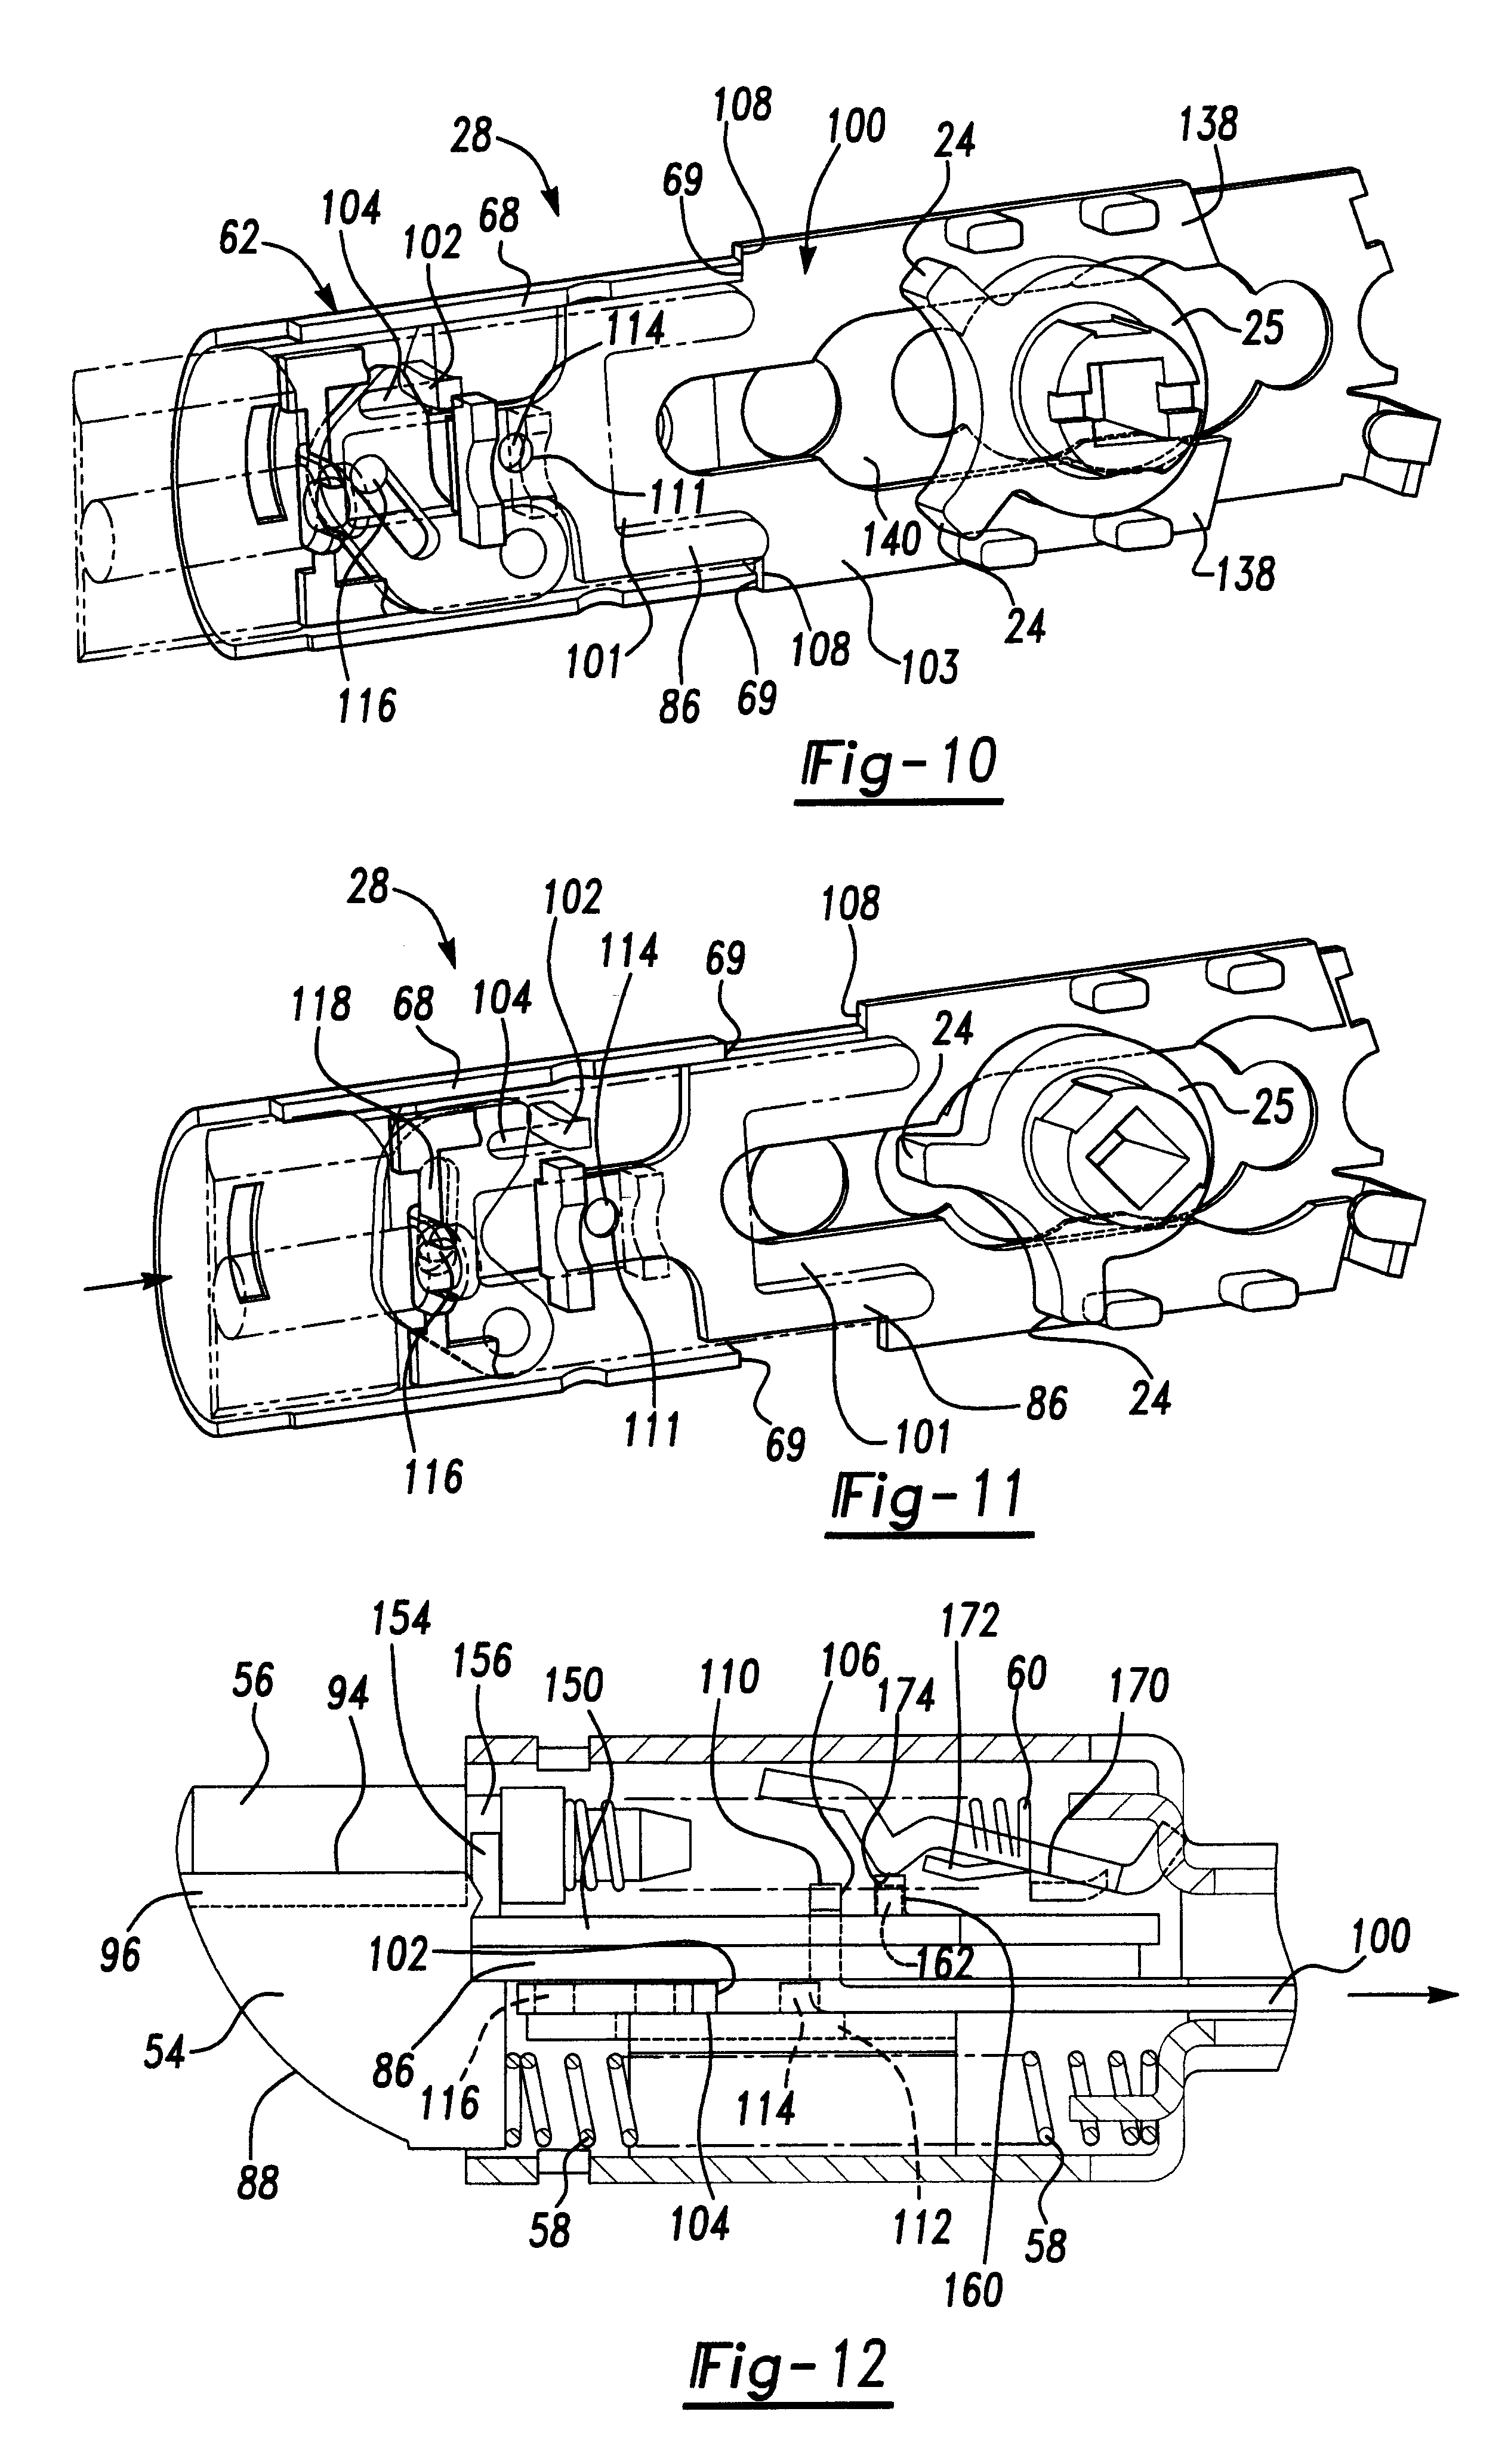 Door Knob Latch Diagram Of Release Mechanism Patent Us6612627 Assembly With Accelerated Bolt Motion Rh Google Com Round Plate House